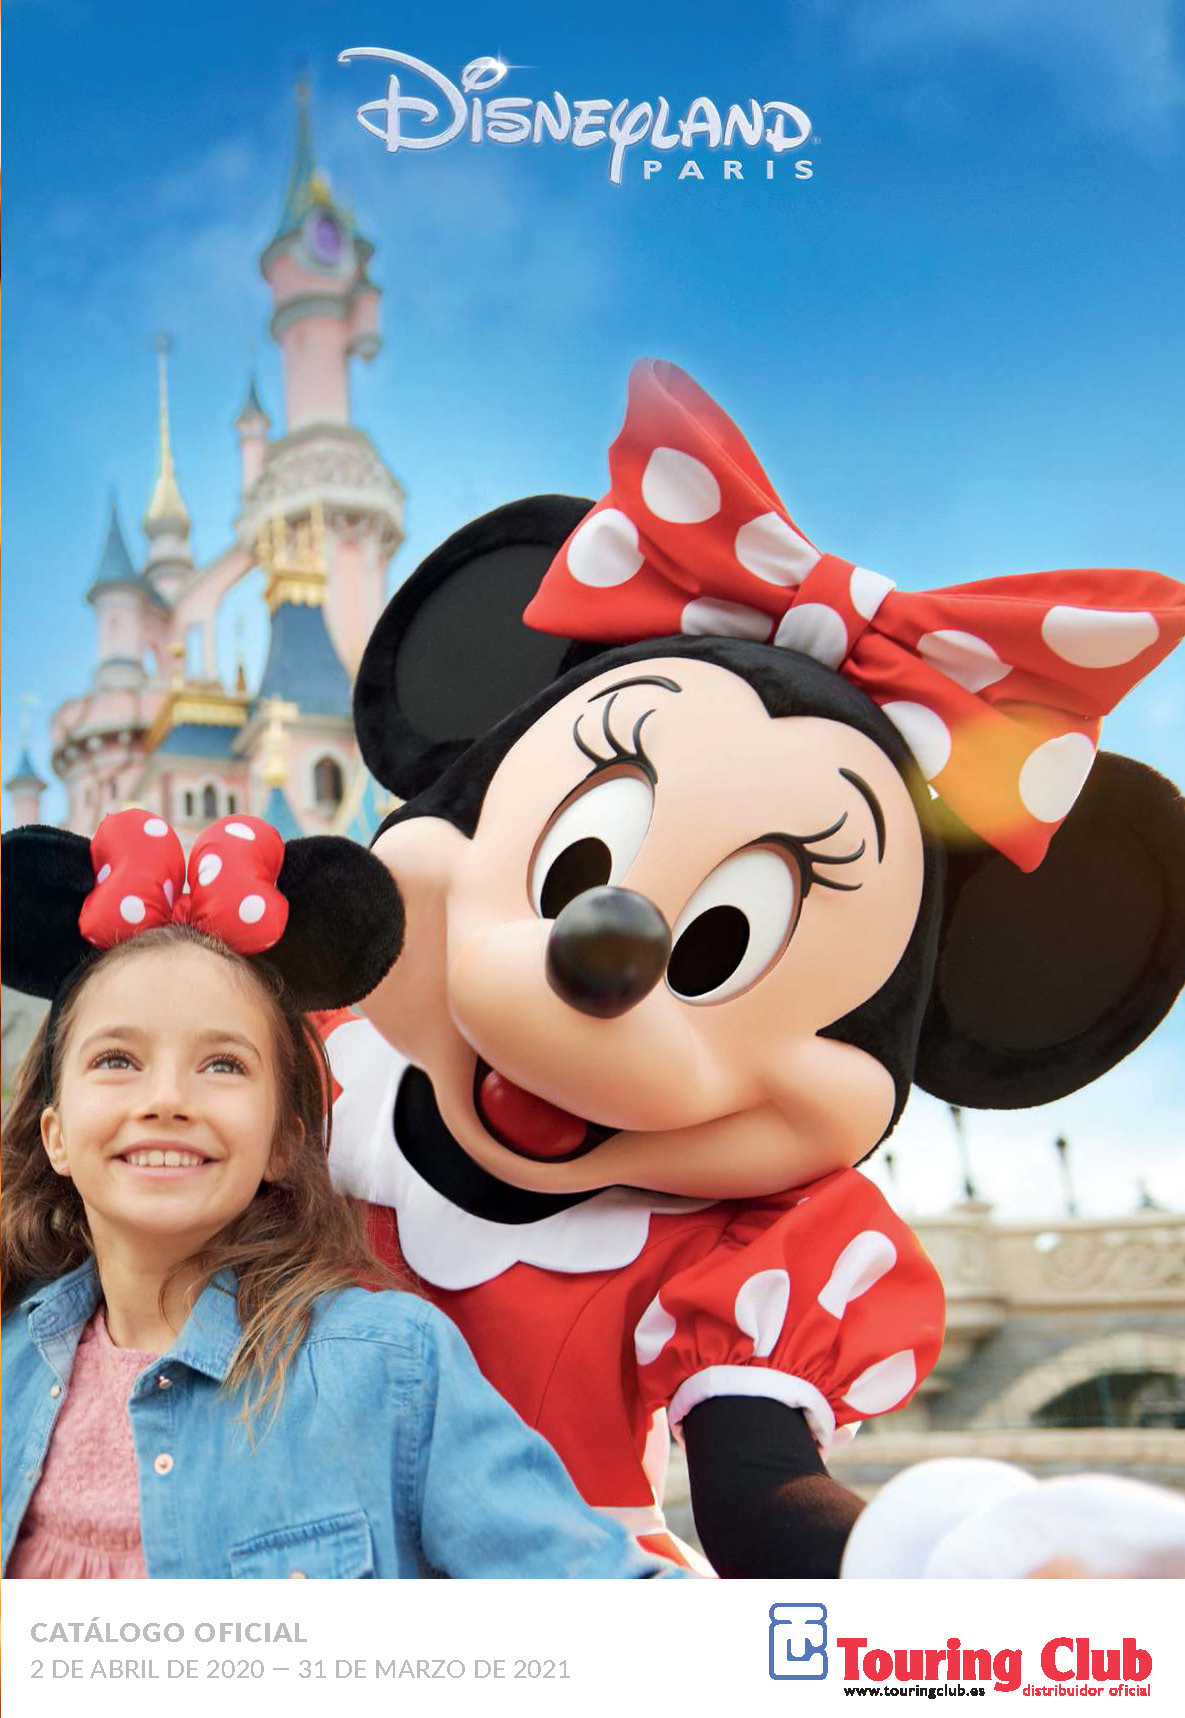 Catalogo Touring Club Disneyland Paris 2020